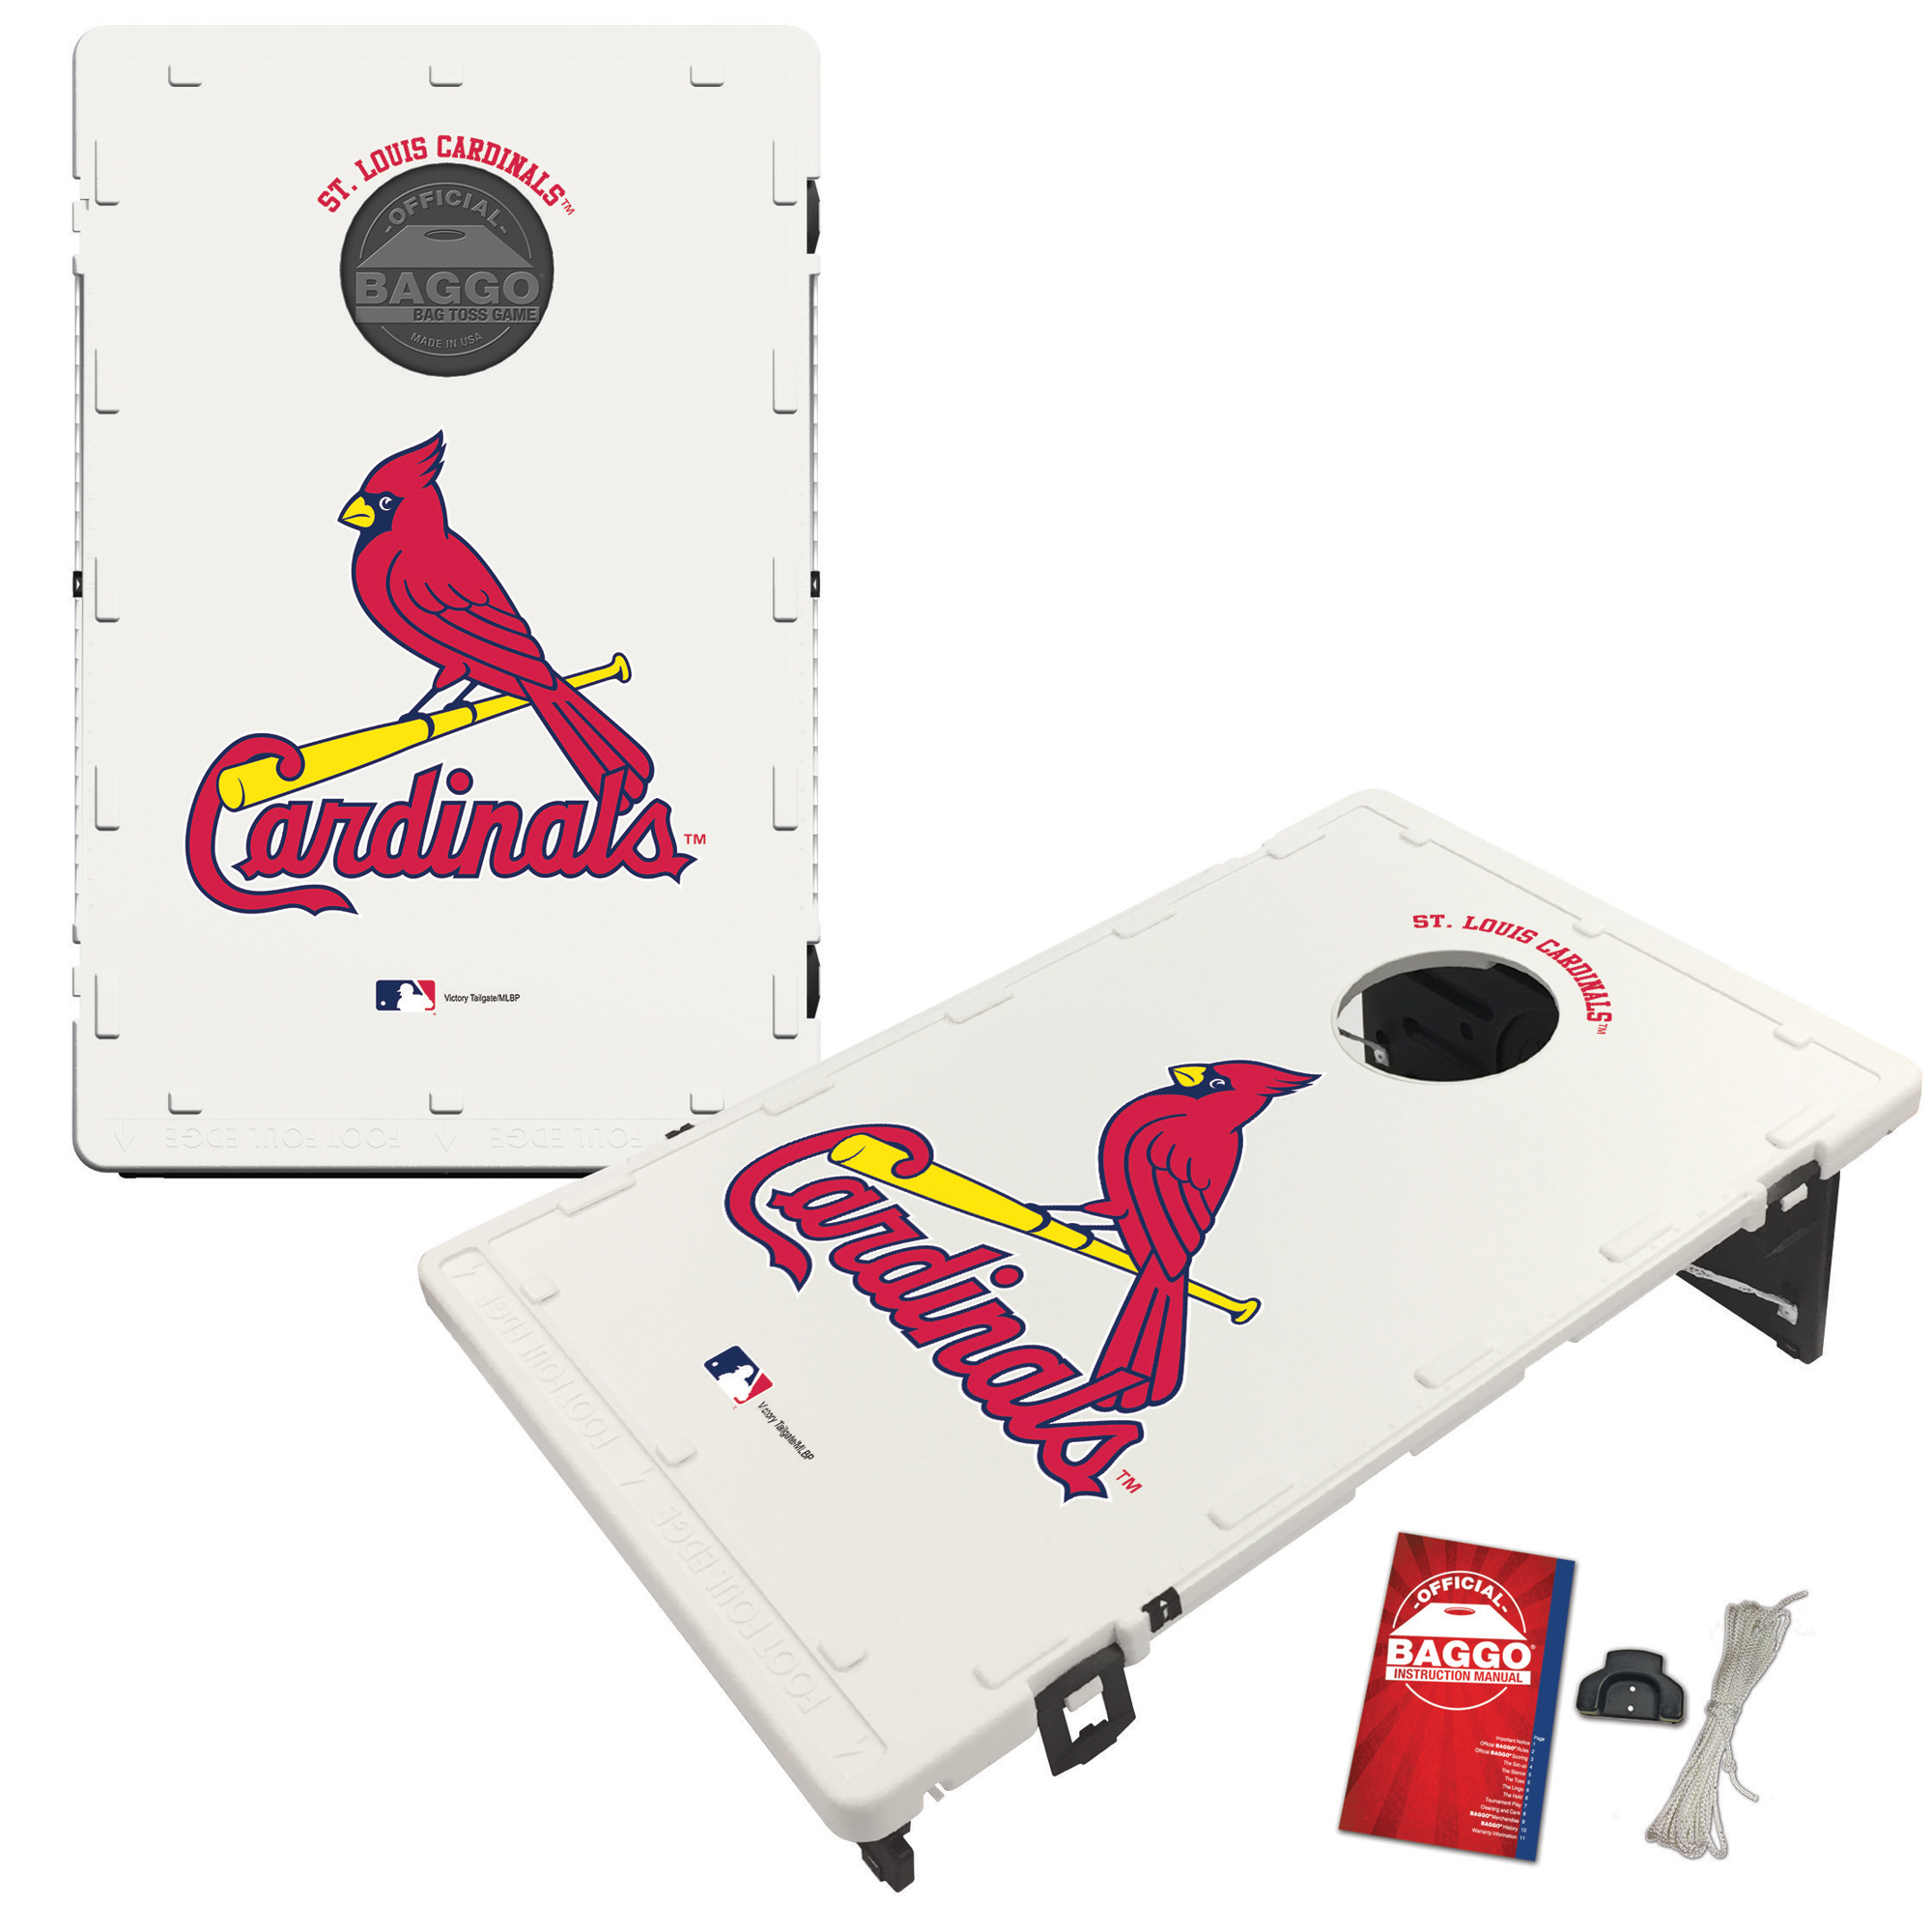 St. Louis Cardinals 2' x 3' Classic Design BAGGO Bean Bag Toss Game - No Size